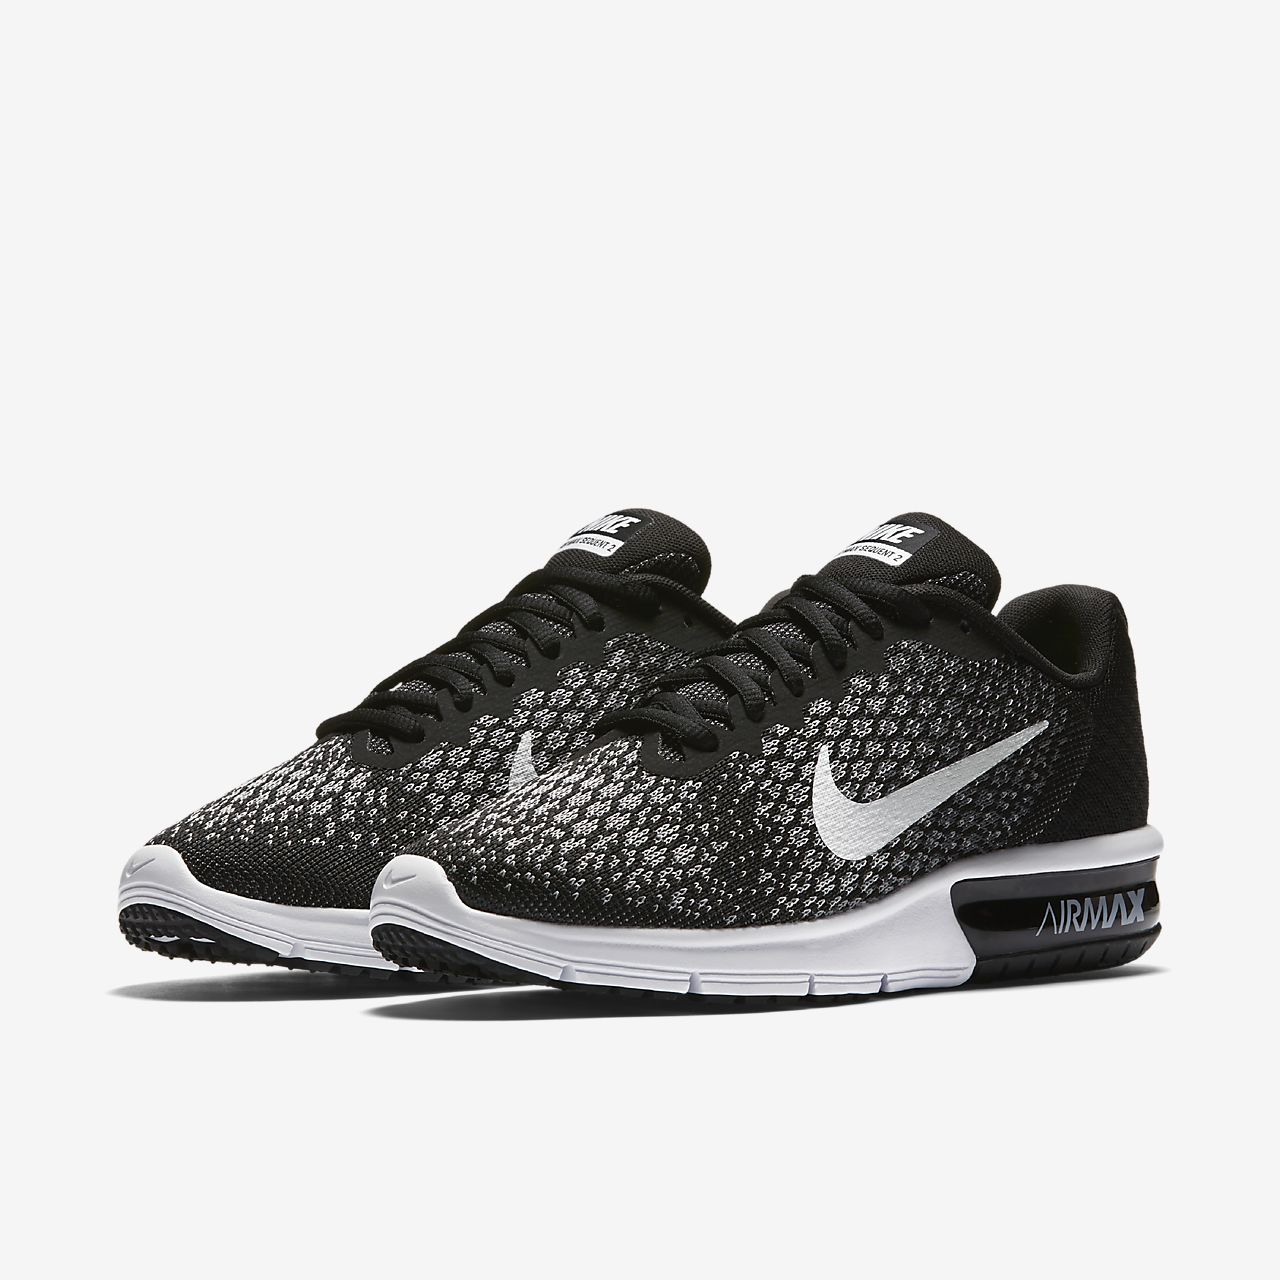 in stock a3ec5 53acf ... Nike Air Max Sequent 2 Womens Shoe